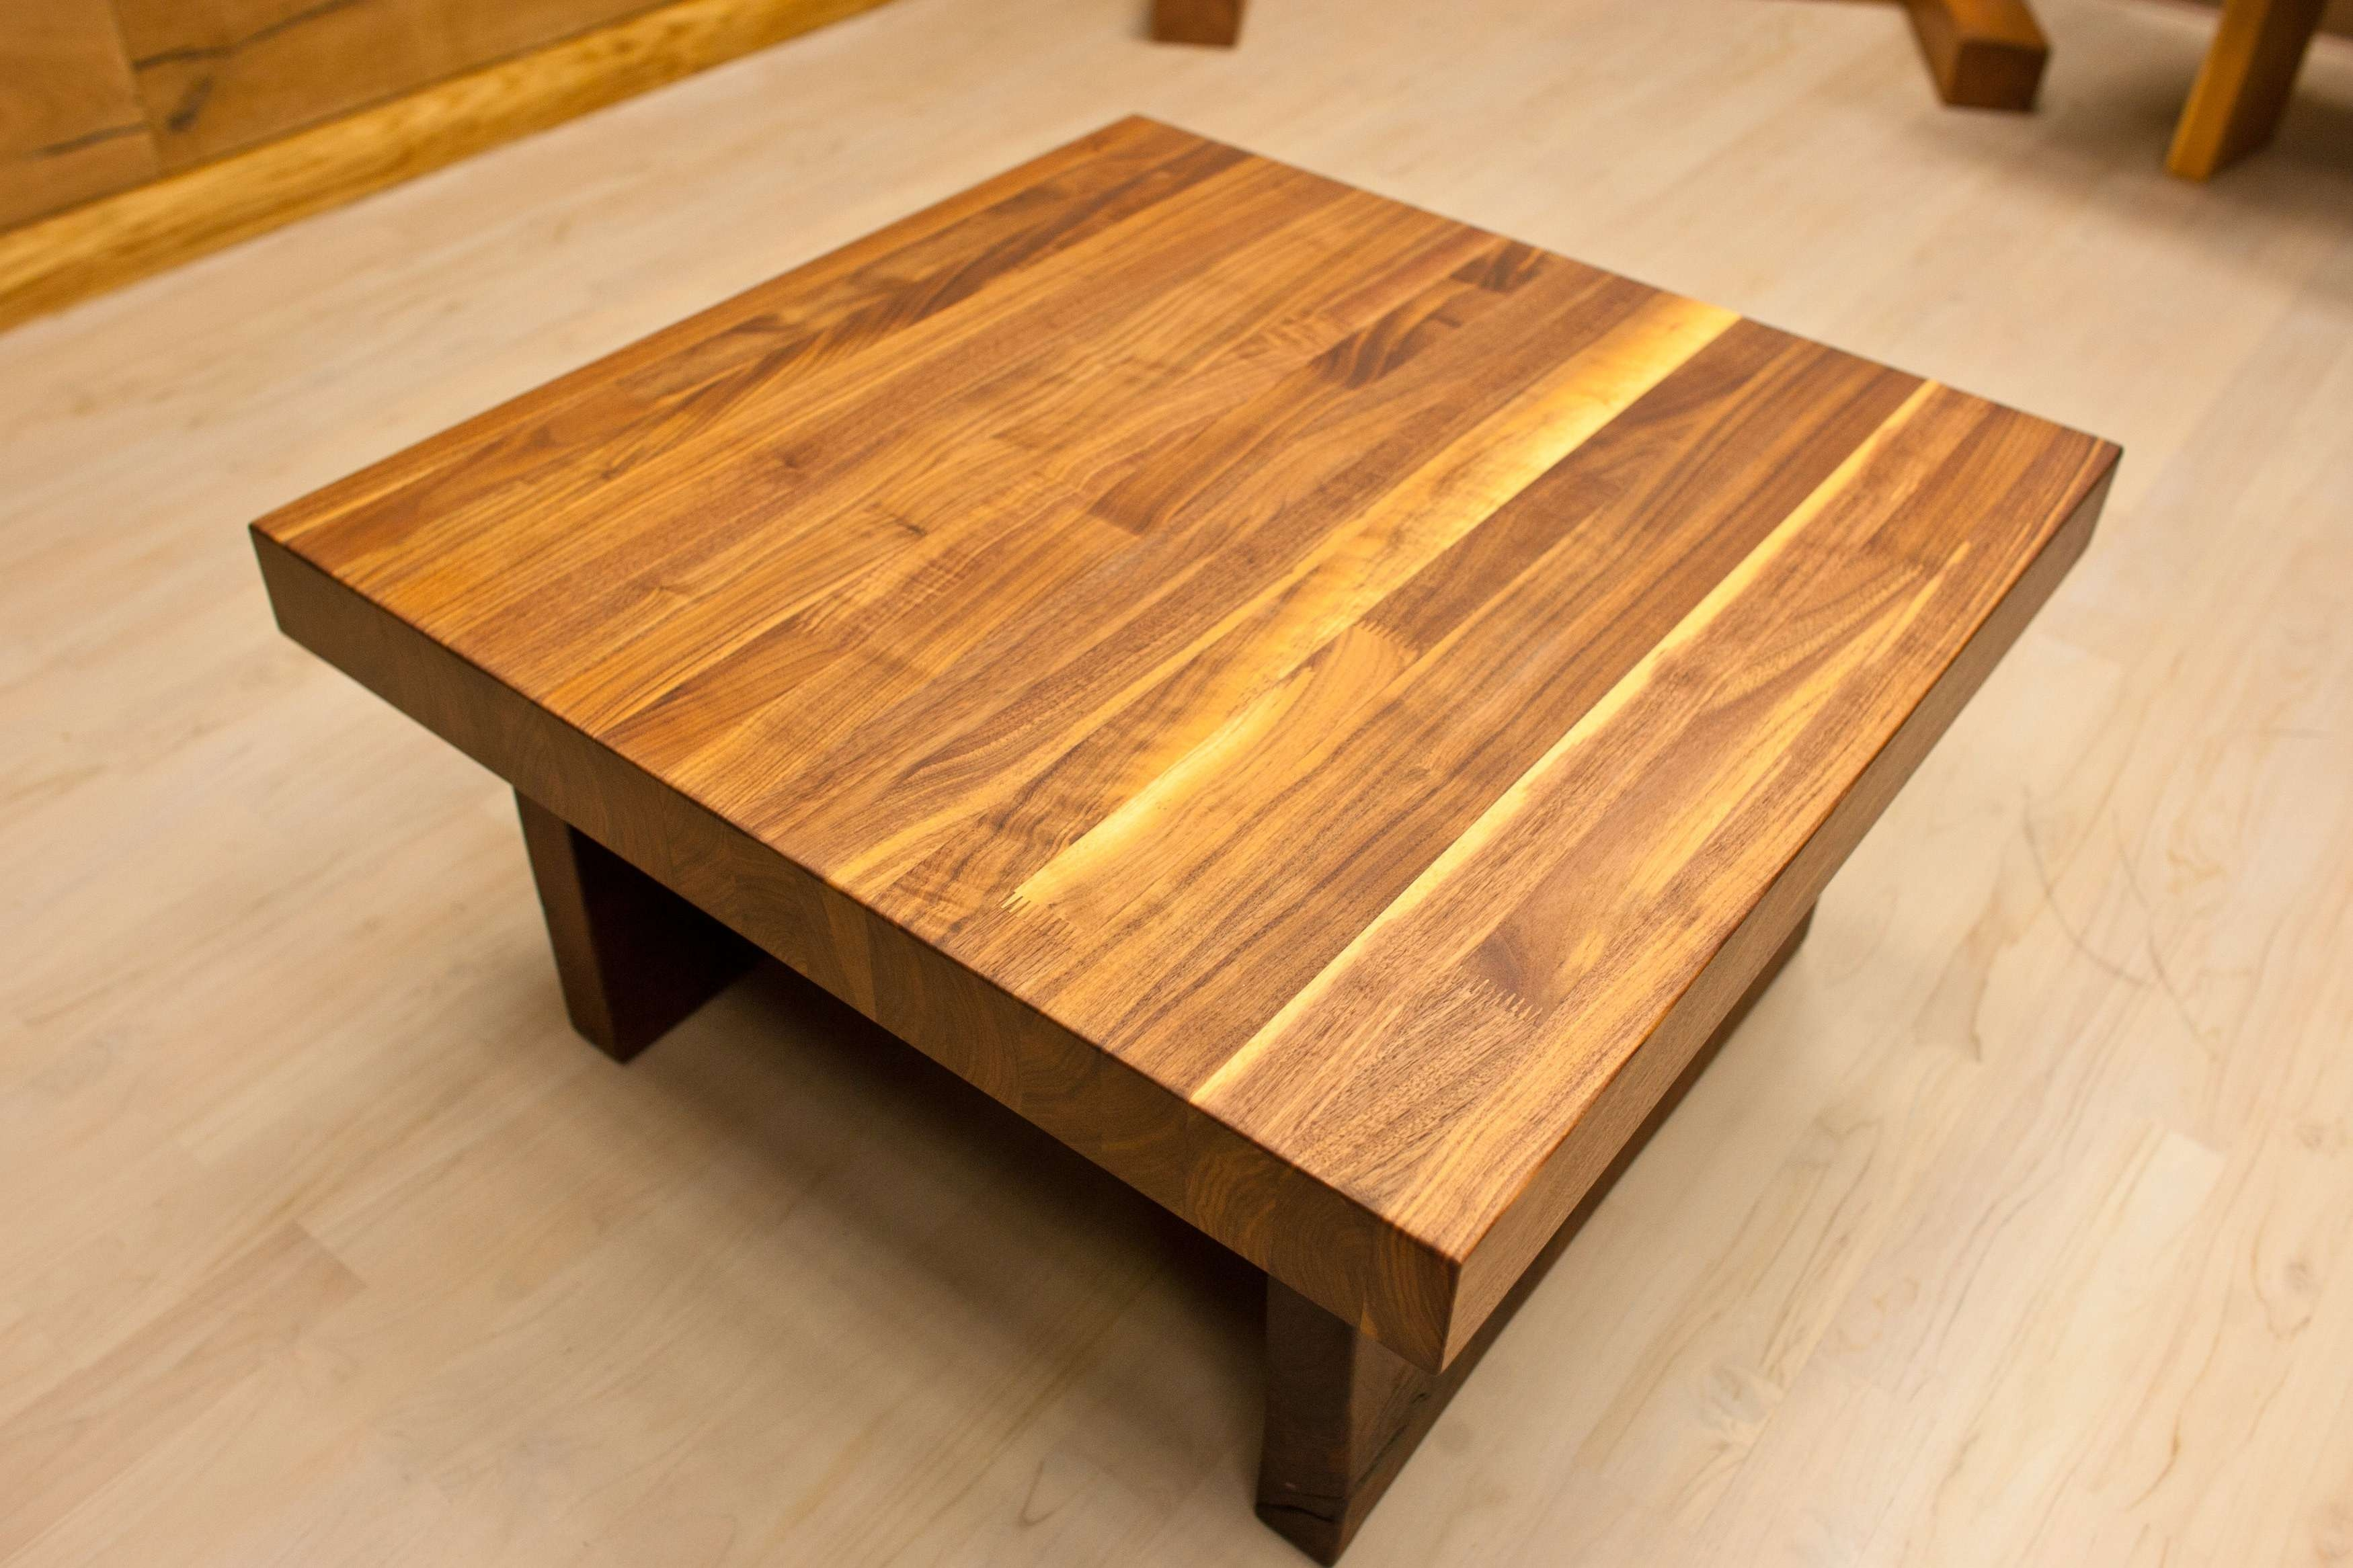 2018 Square Wooden Coffee Tables For Coffee Table : Square Woode Table Sets With Glass Inserts Tables (View 16 of 20)